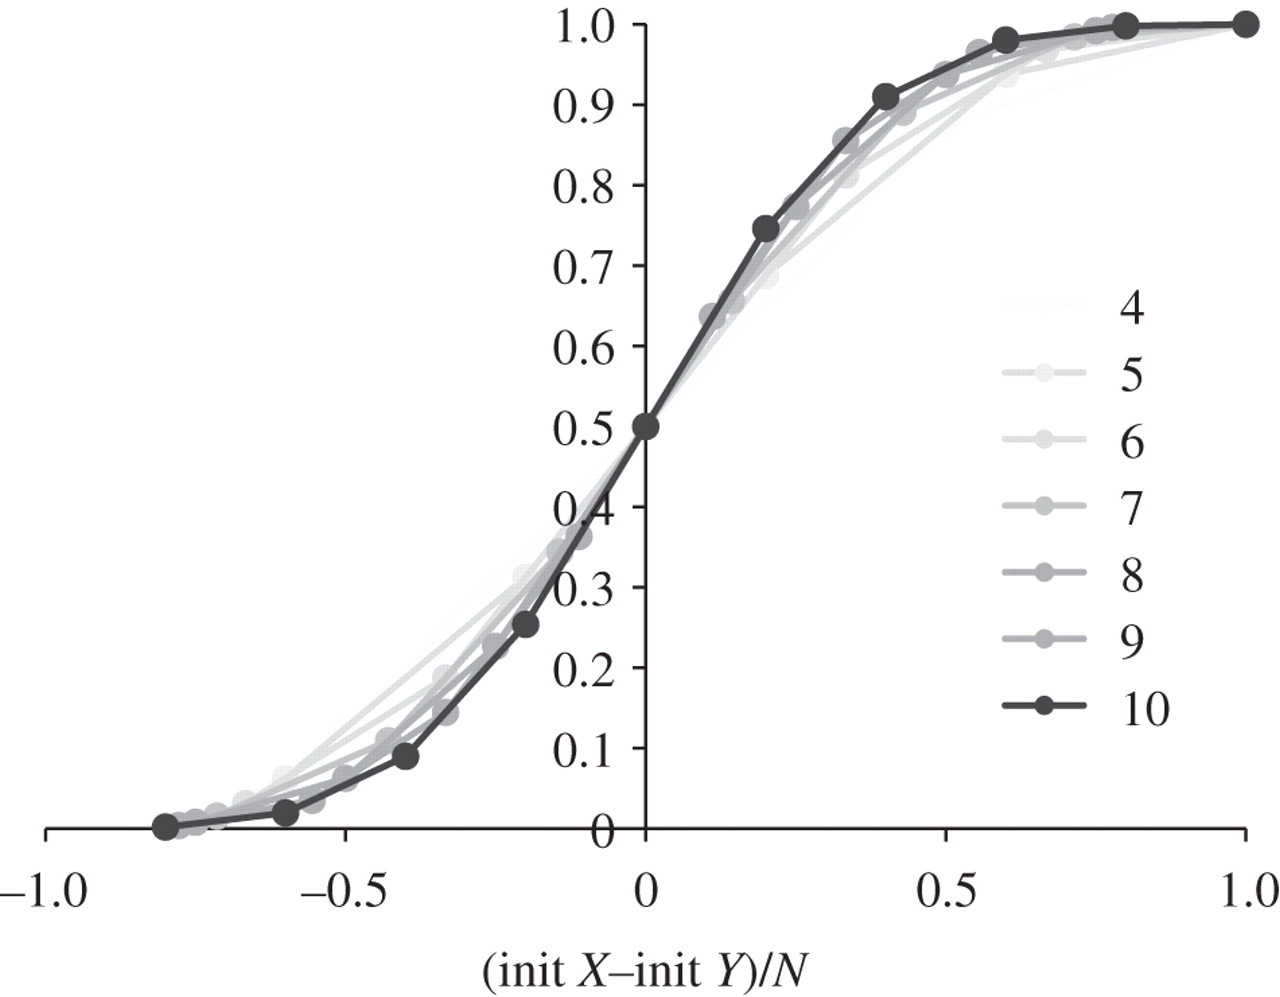 Design and analysis of DNA strand displacement devices